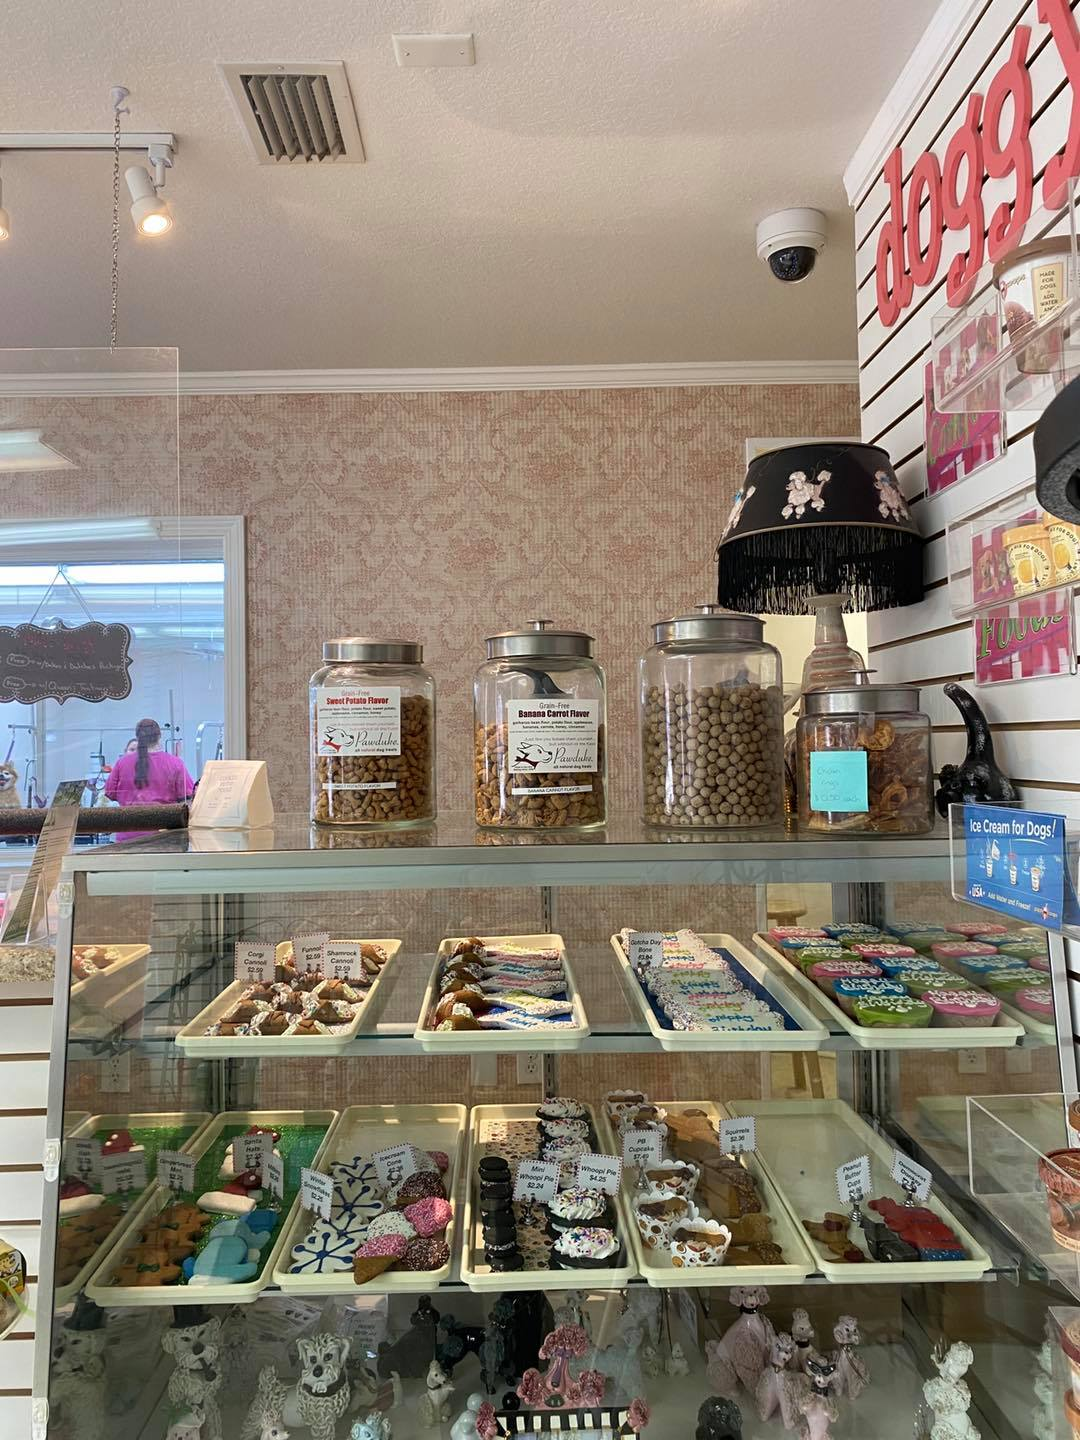 pet bakery, dog birthday cakes and cookies